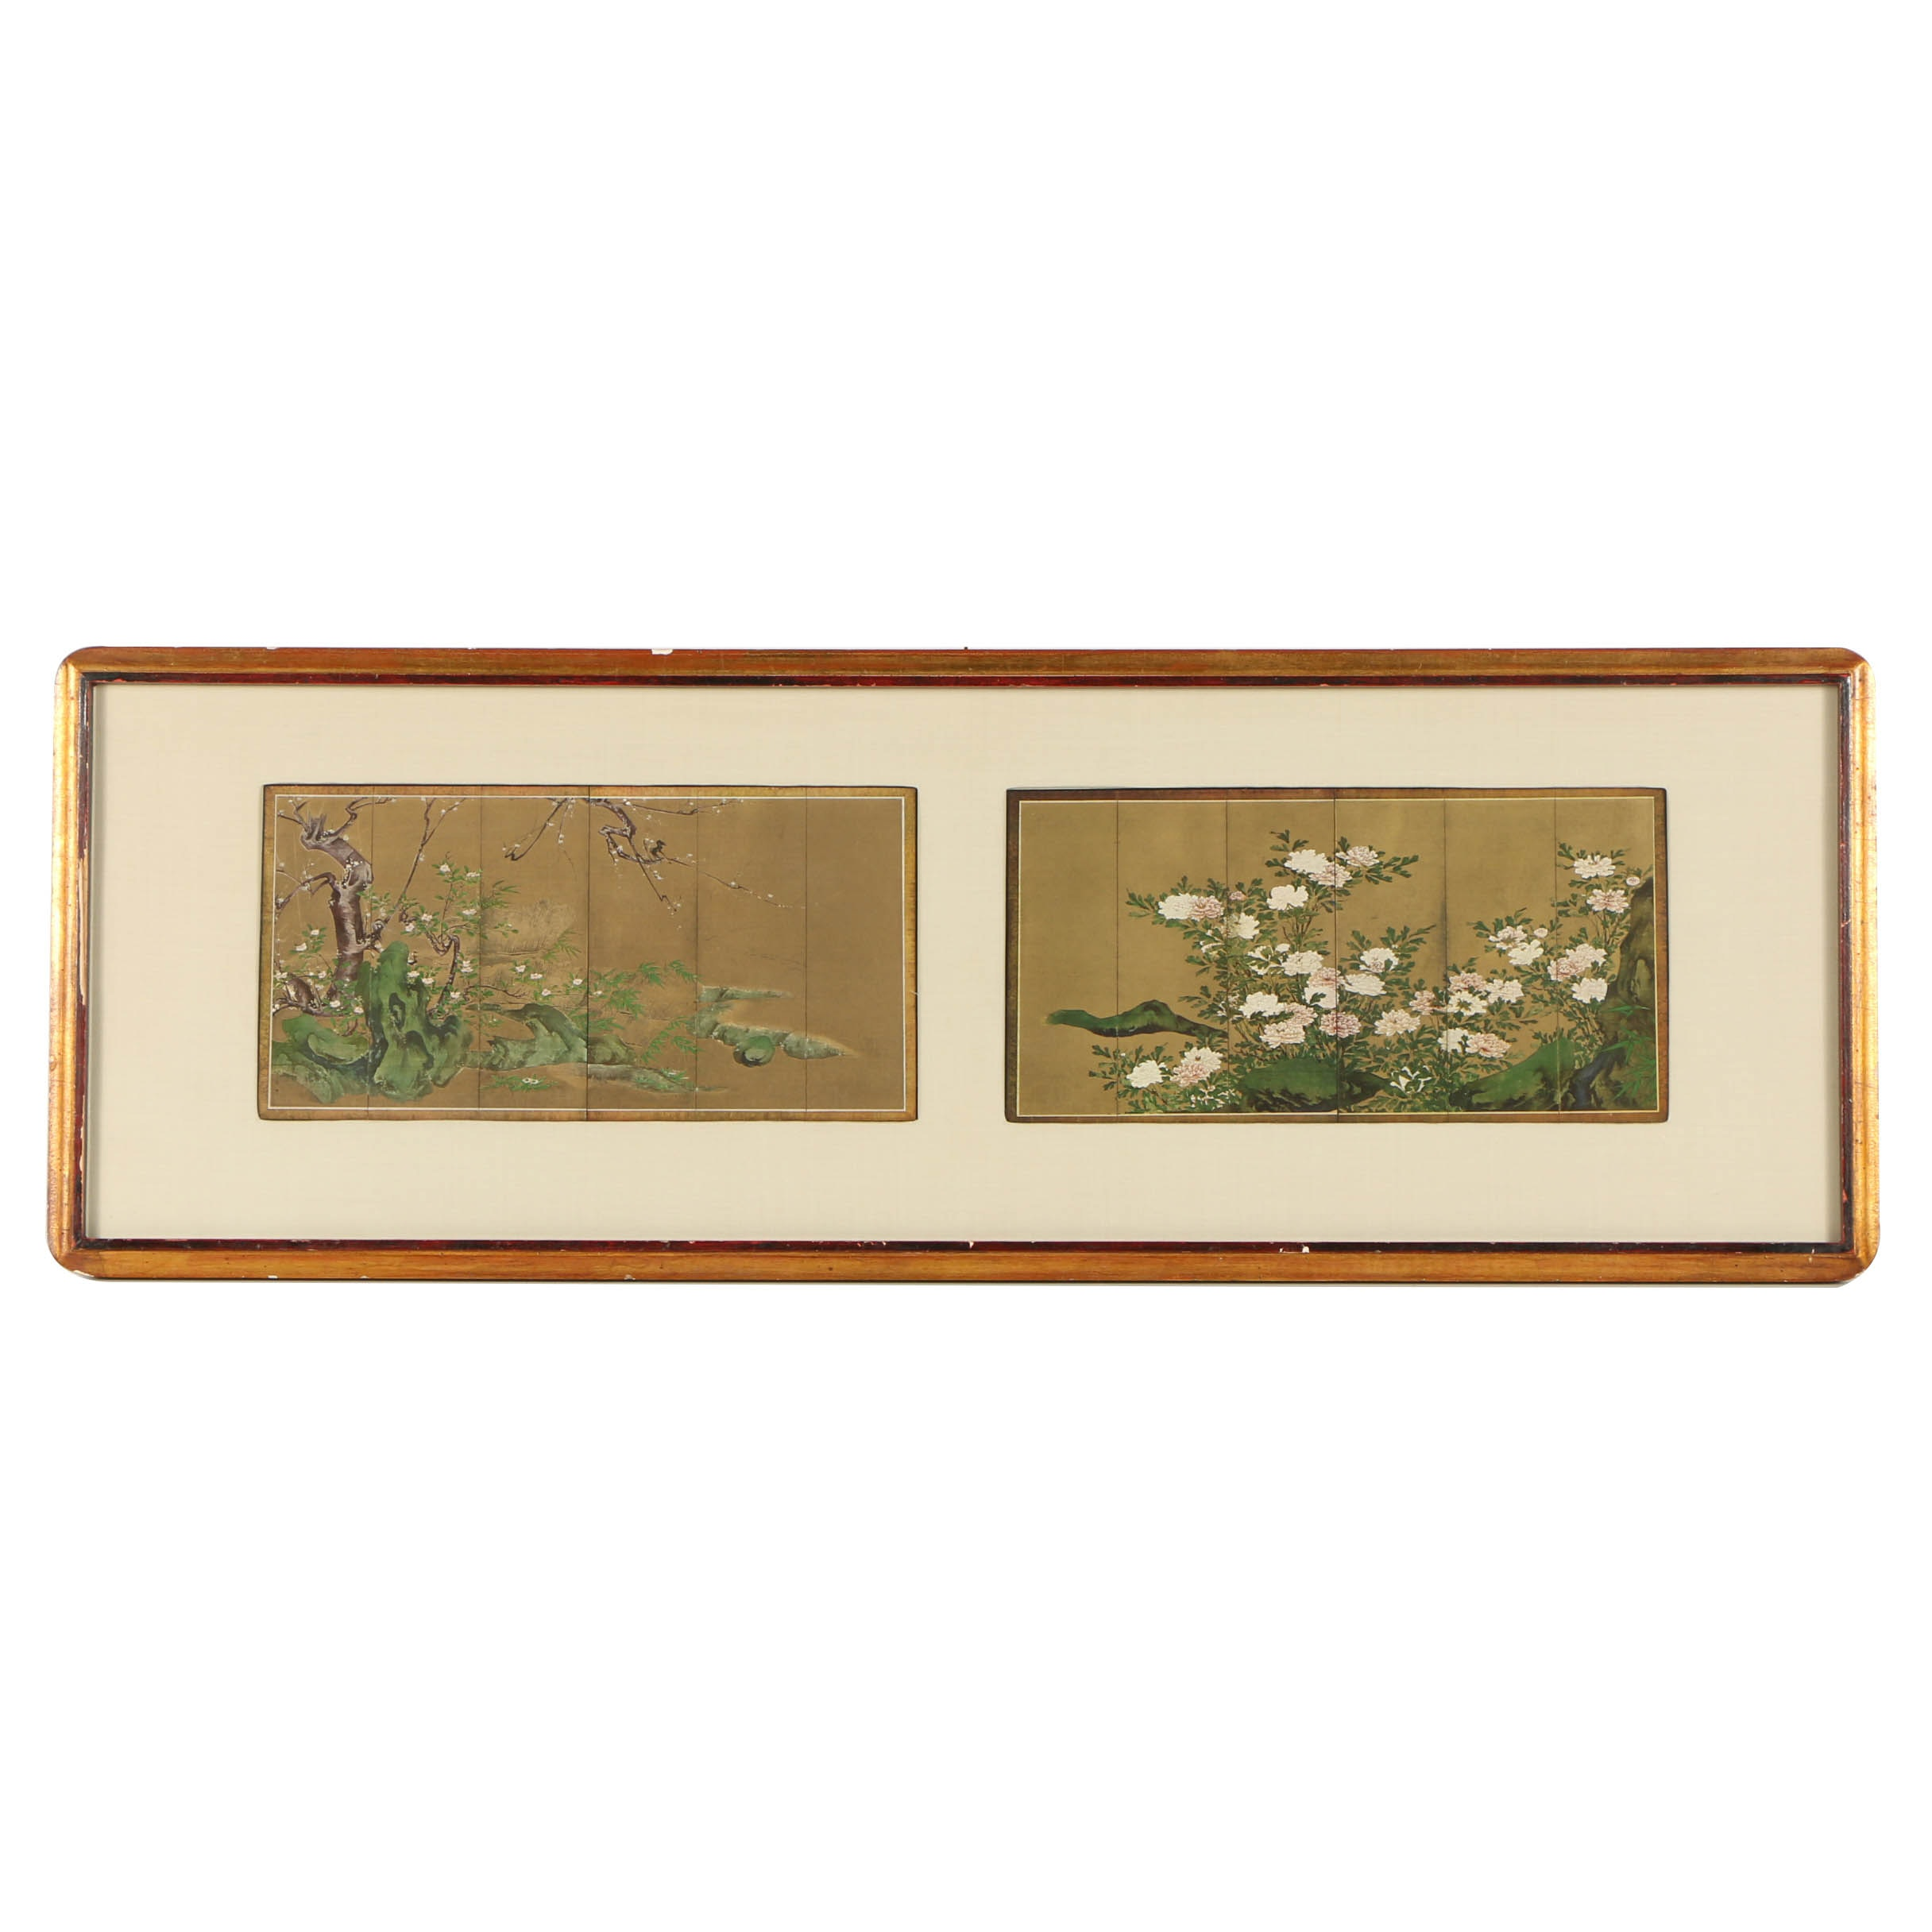 Offset Lithograph After Japanese Folding Screens